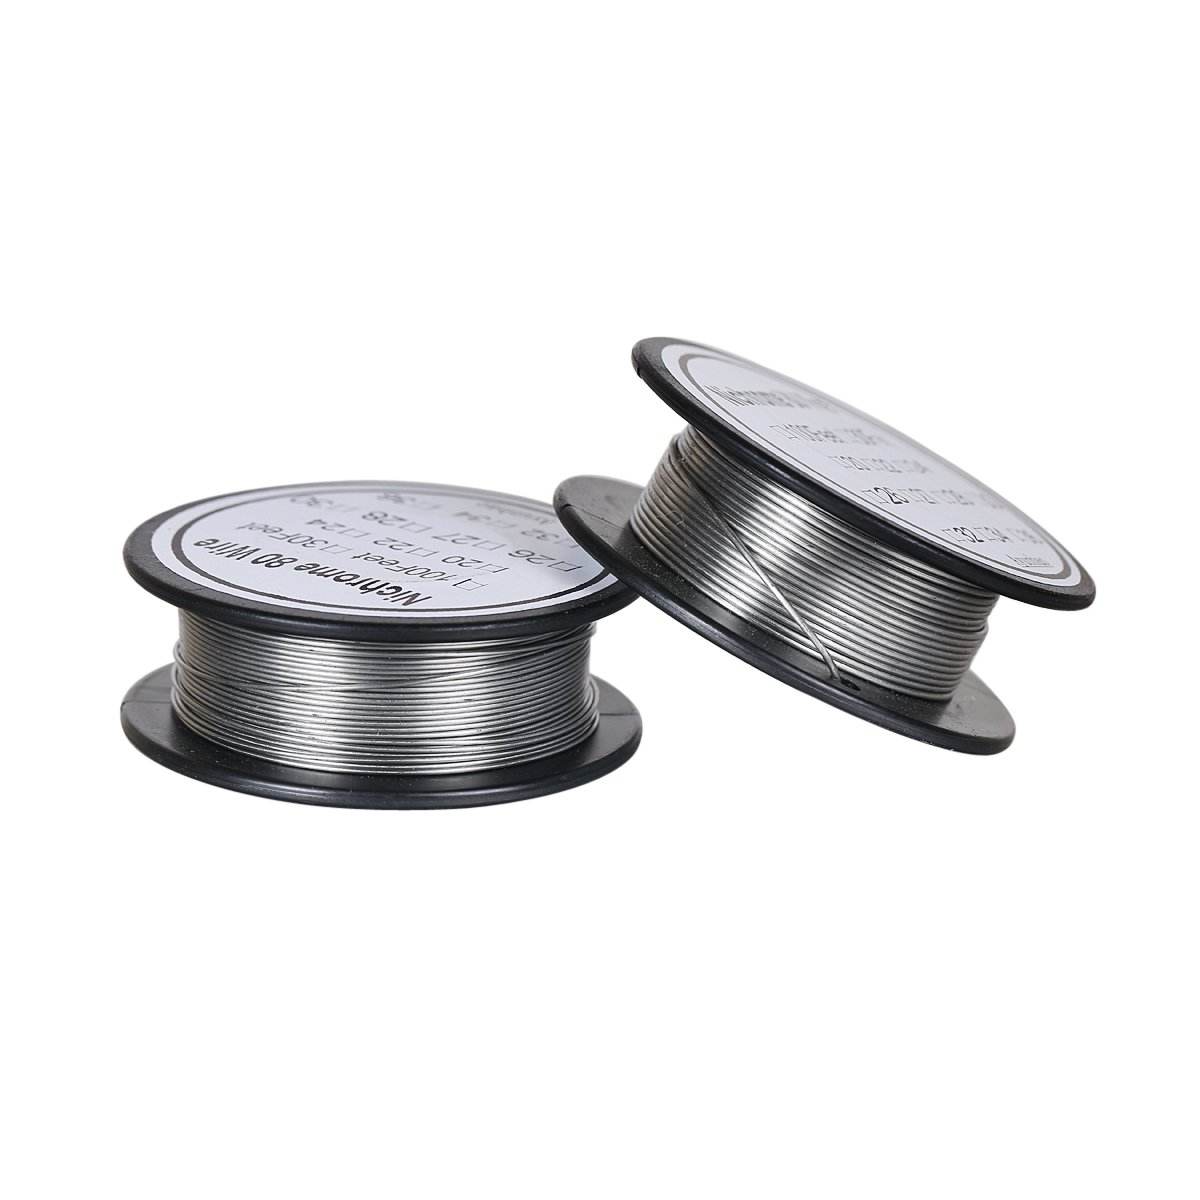 Nichrome 80 - 100 ft 34 Gauge AWG Widerstand Draht: Amazon.de ...